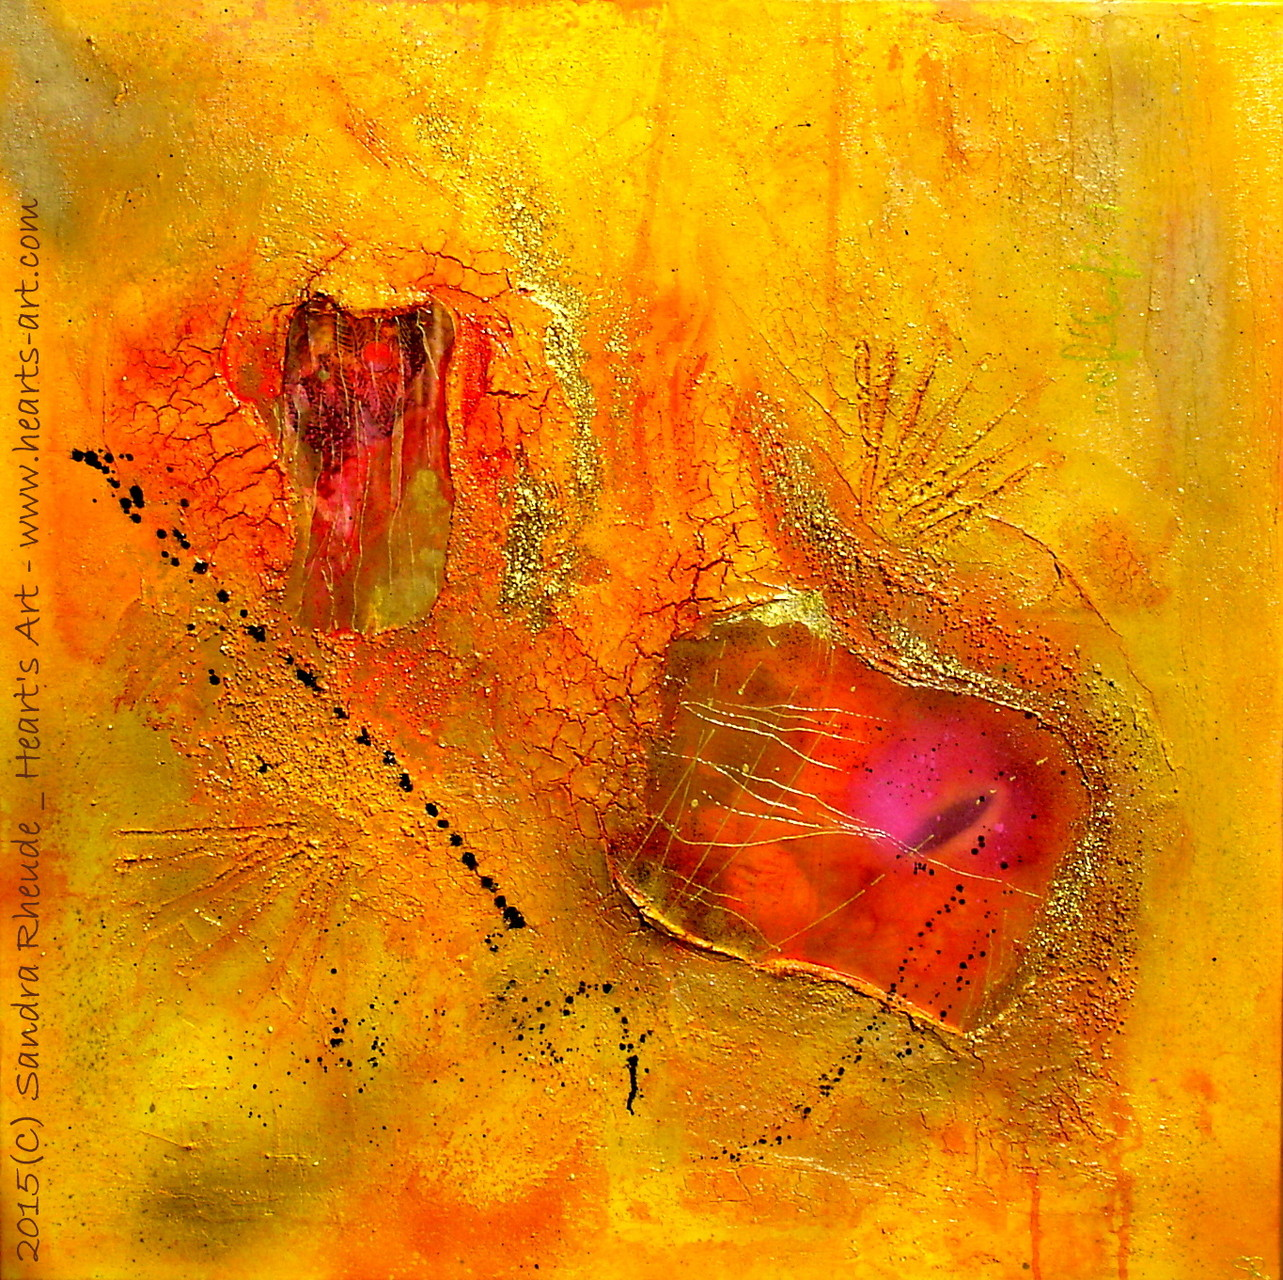 'Golden Age of the Moonflower Seeds' - 2015/08 - Acryl/MixedMedia auf Leinwand - 70 x 70 cm - € 330